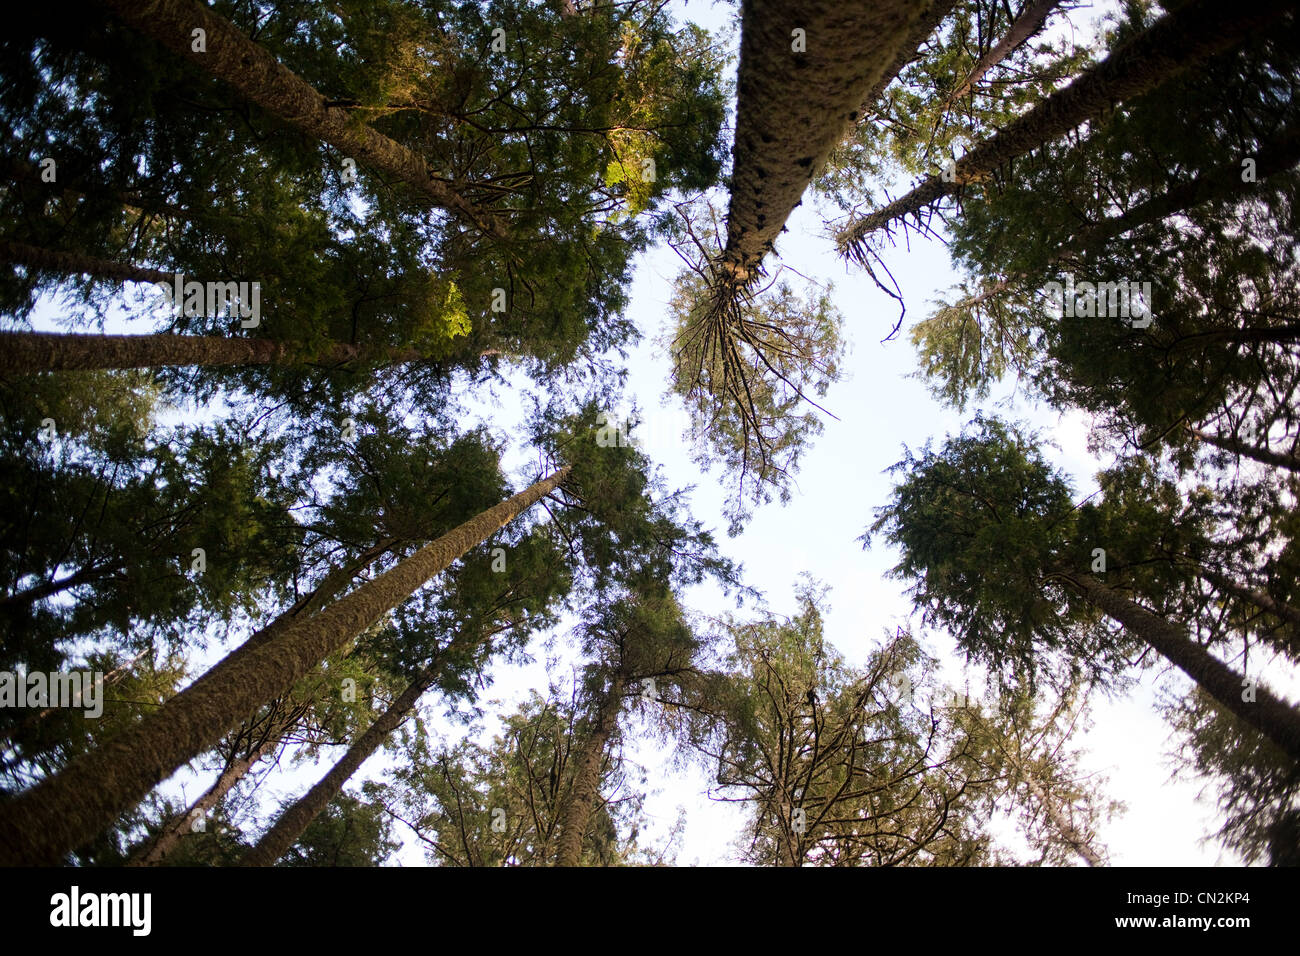 Trees, low angle view - Stock Image